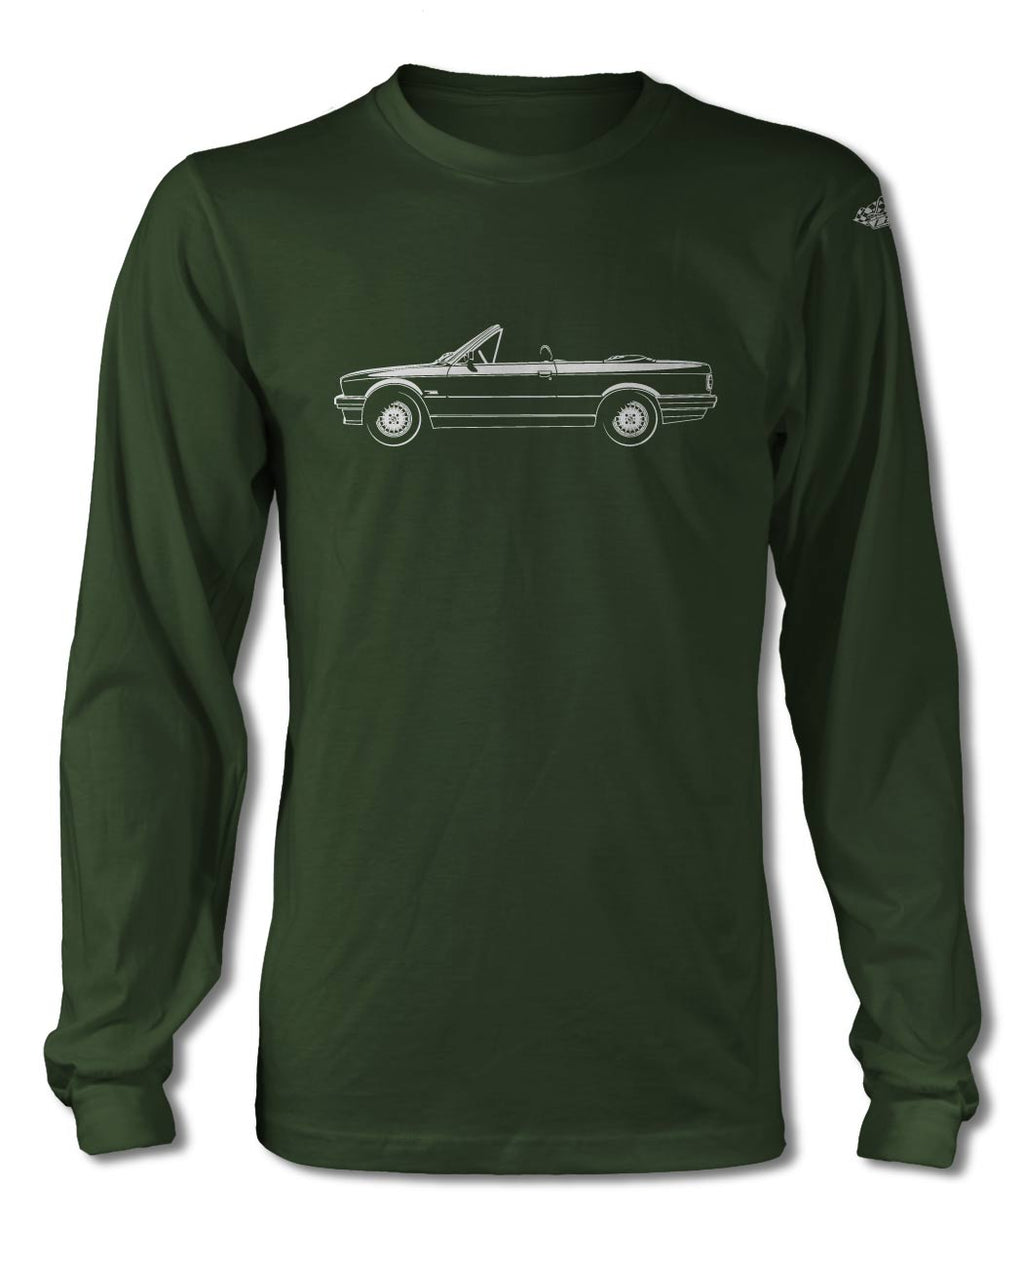 BMW 325i Convertible T-Shirt - Long Sleeves - Side View